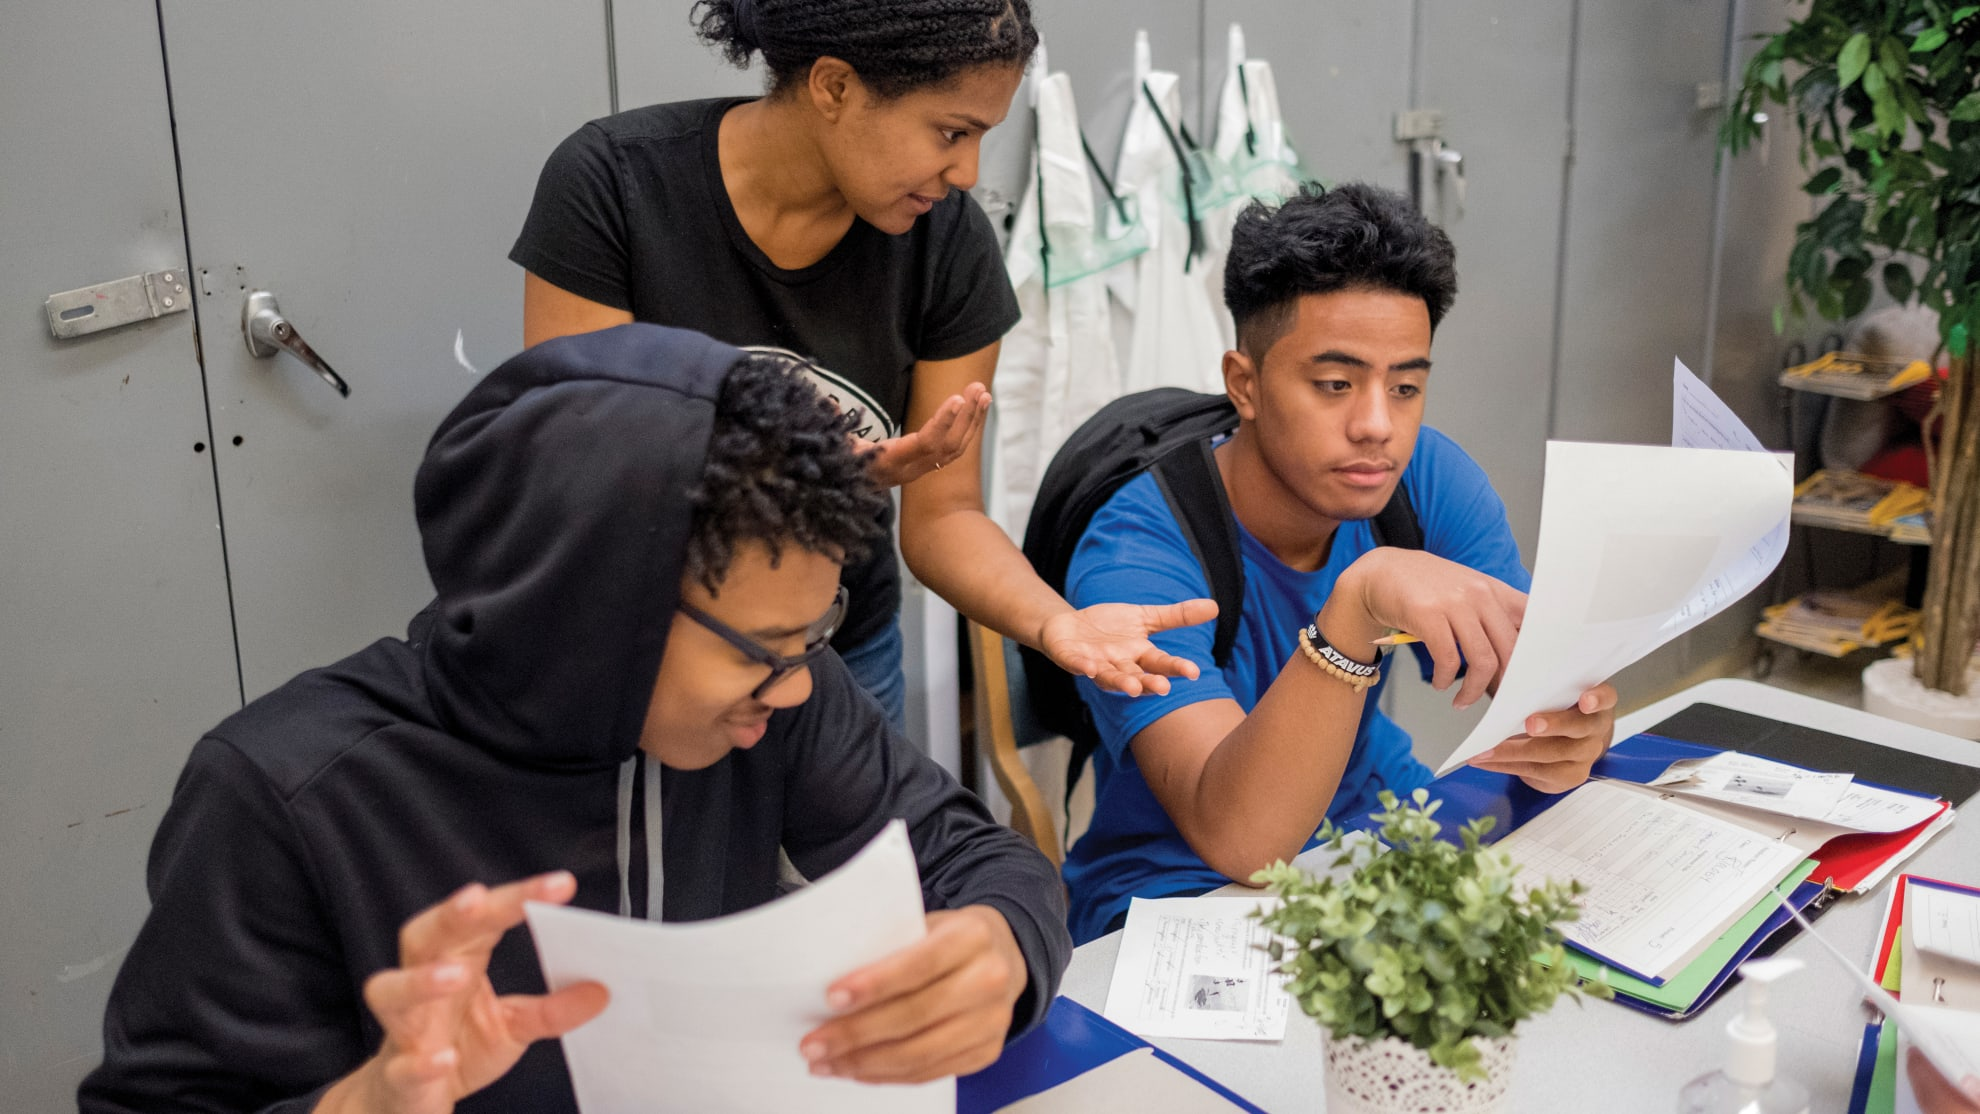 A teacher explaining an assignment to two high school students sitting at a table.